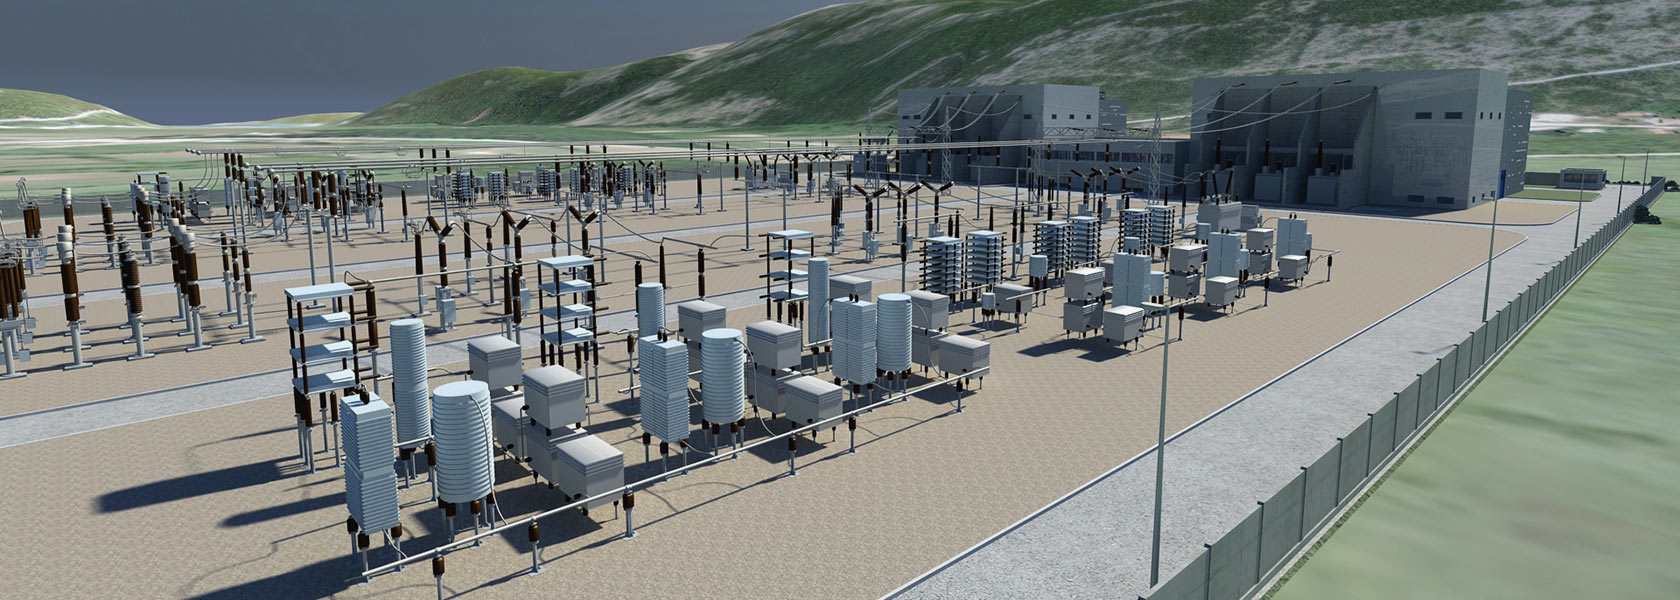 http://energy.rcmteurope.com/sites/default/files/revslider/image/hvdc_header.jpg